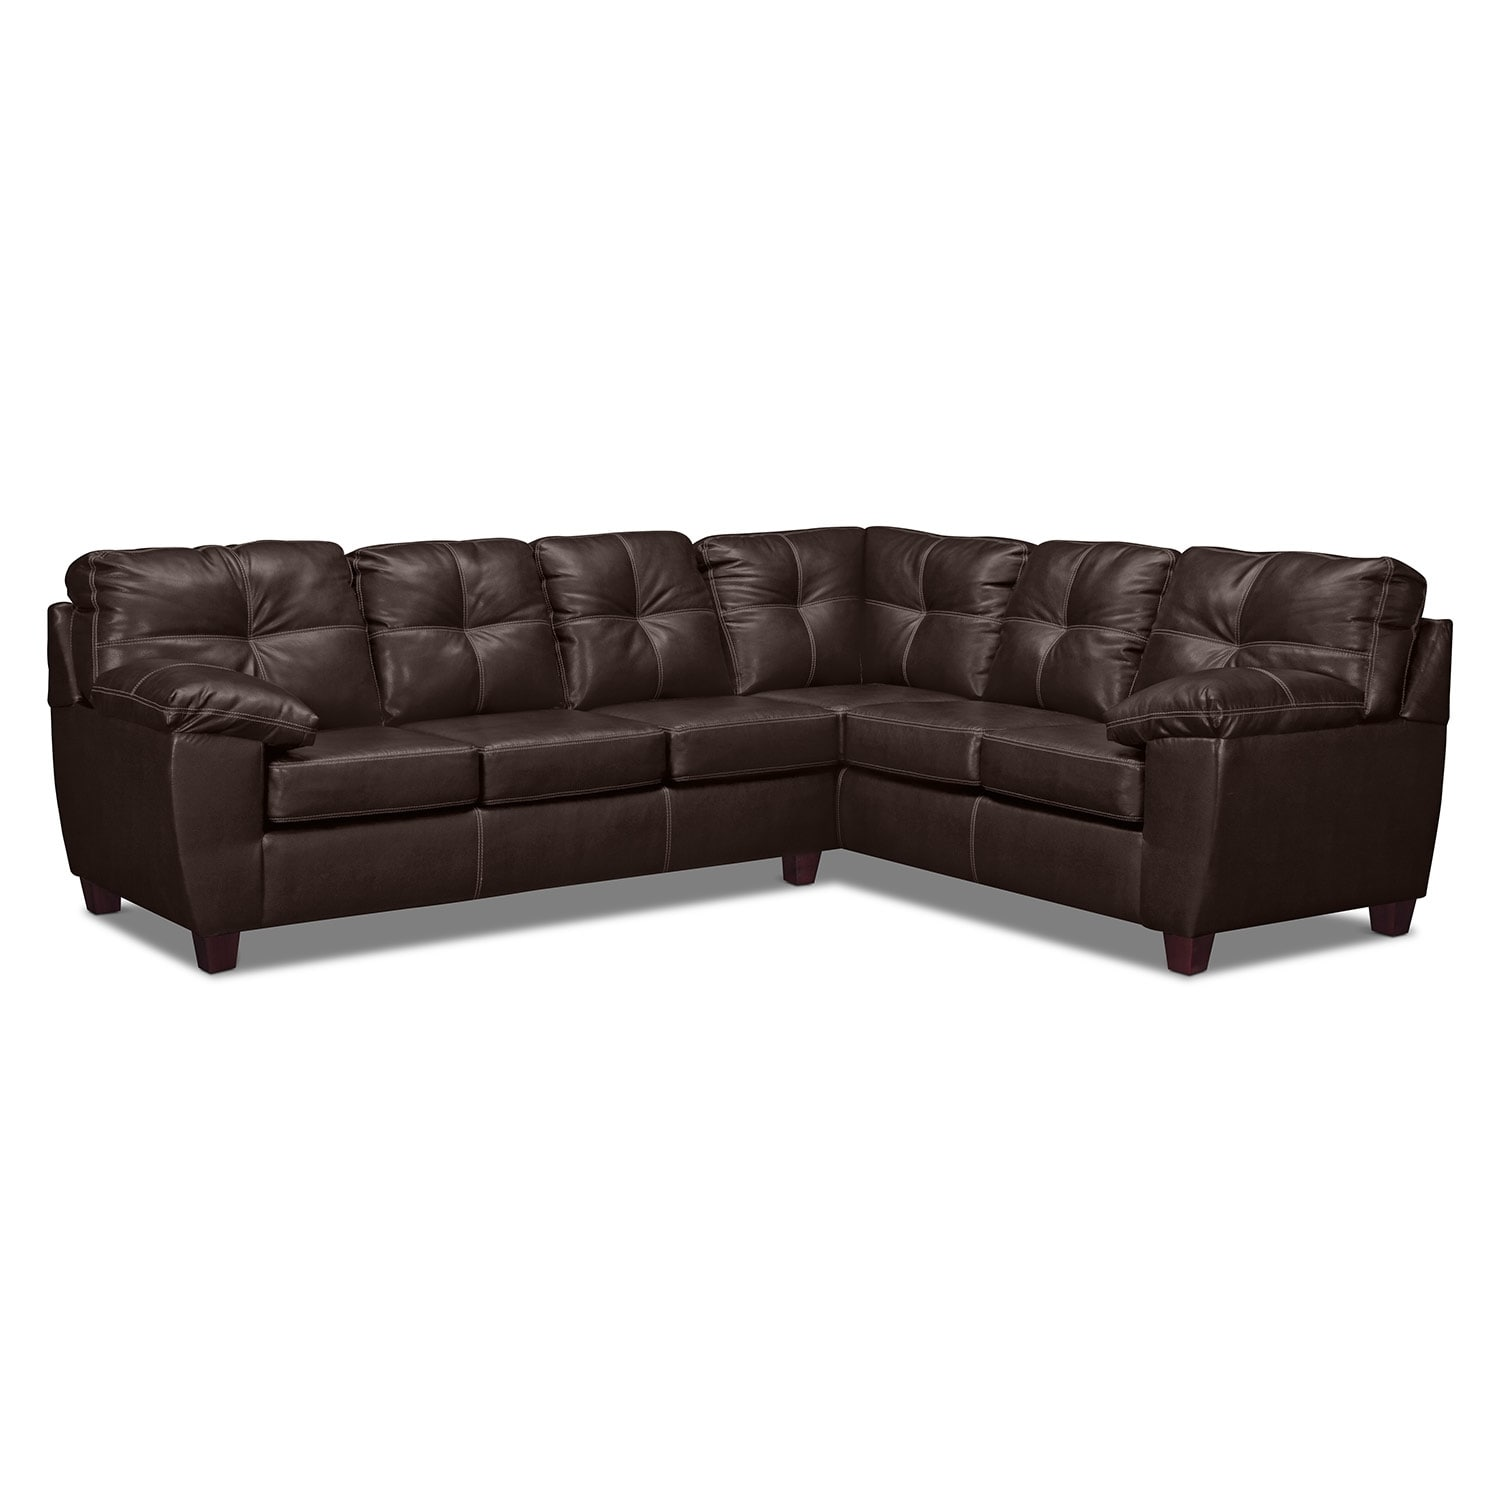 Ricardo 2 Piece Sectional With Right Facing Sofa   Brown Part 66